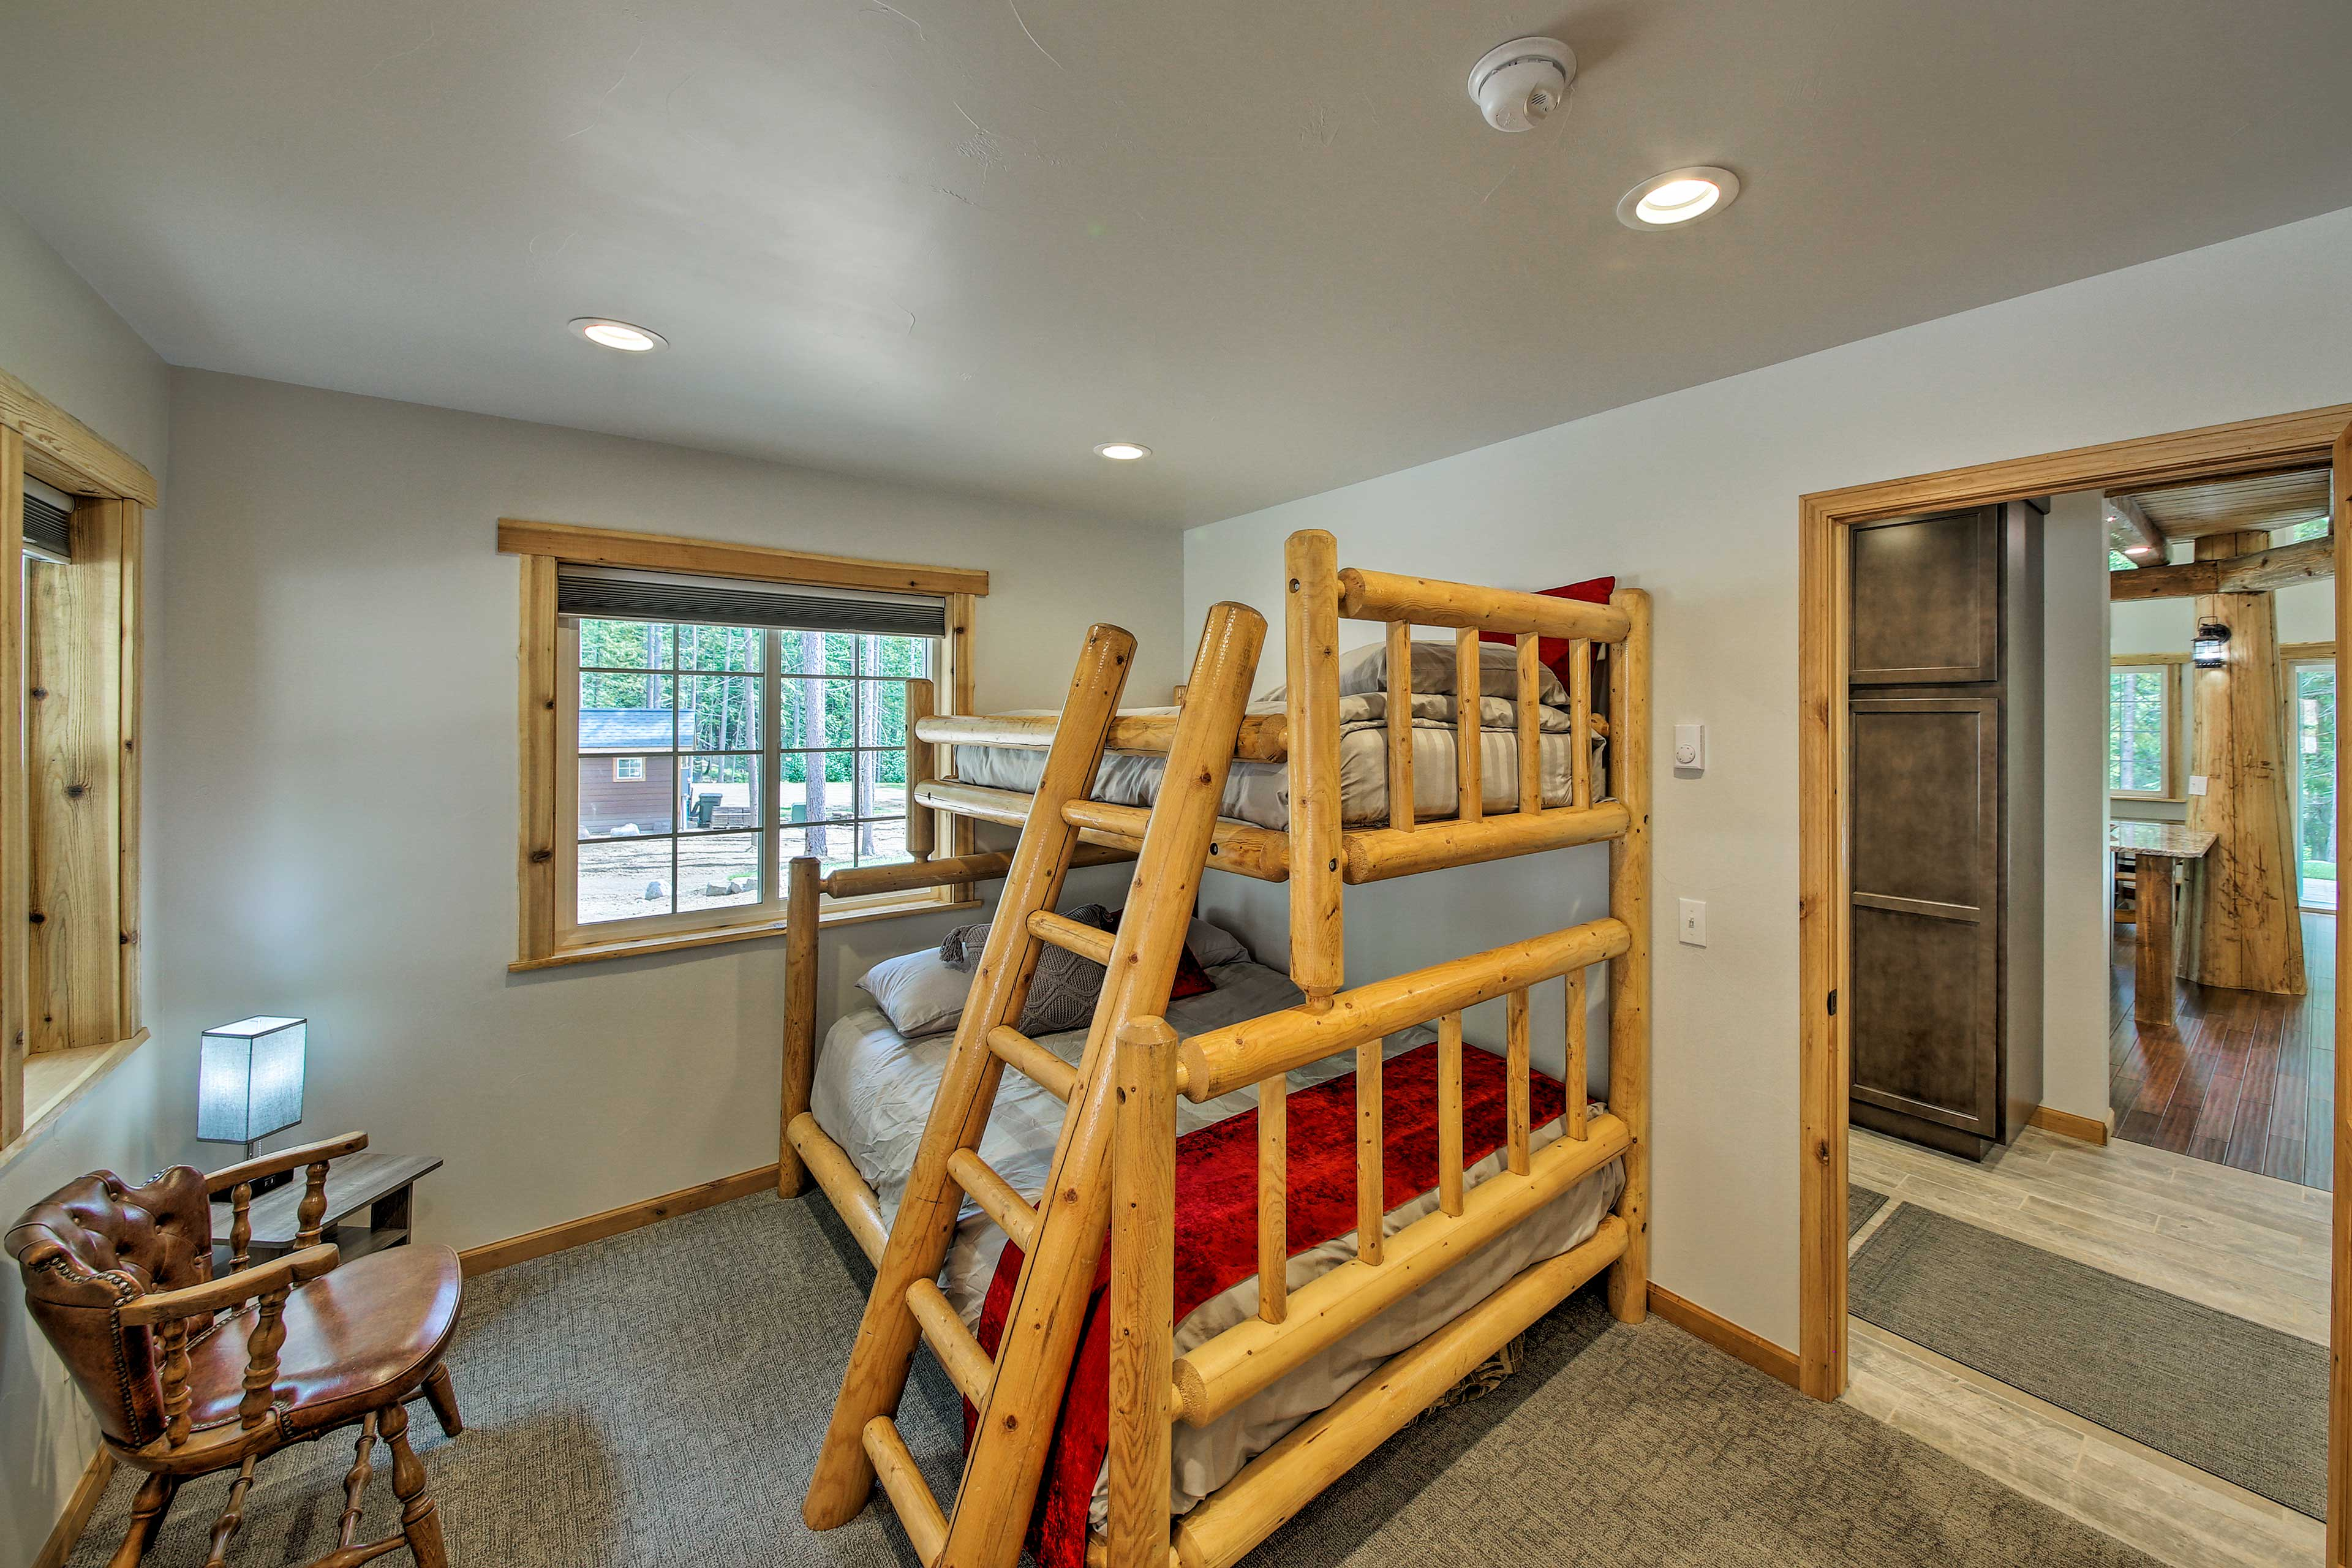 The twin/full bunk bed boasts an authentic log bedframe.